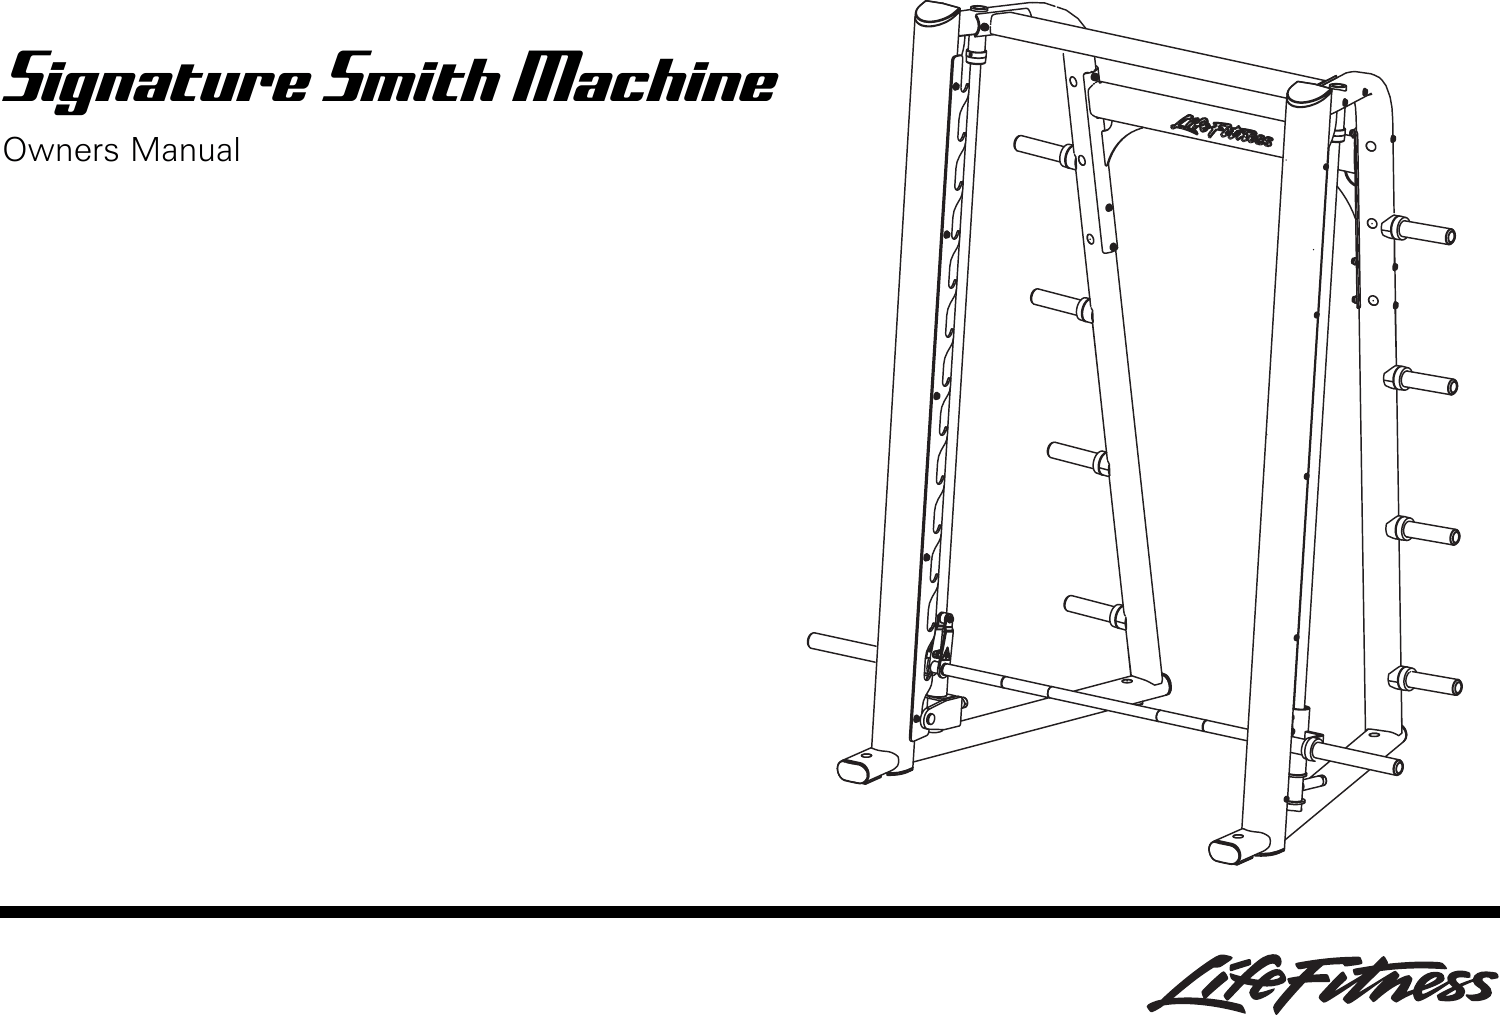 Life Fitness Smith Machine Users Manual SSM_8376701_RevA 1